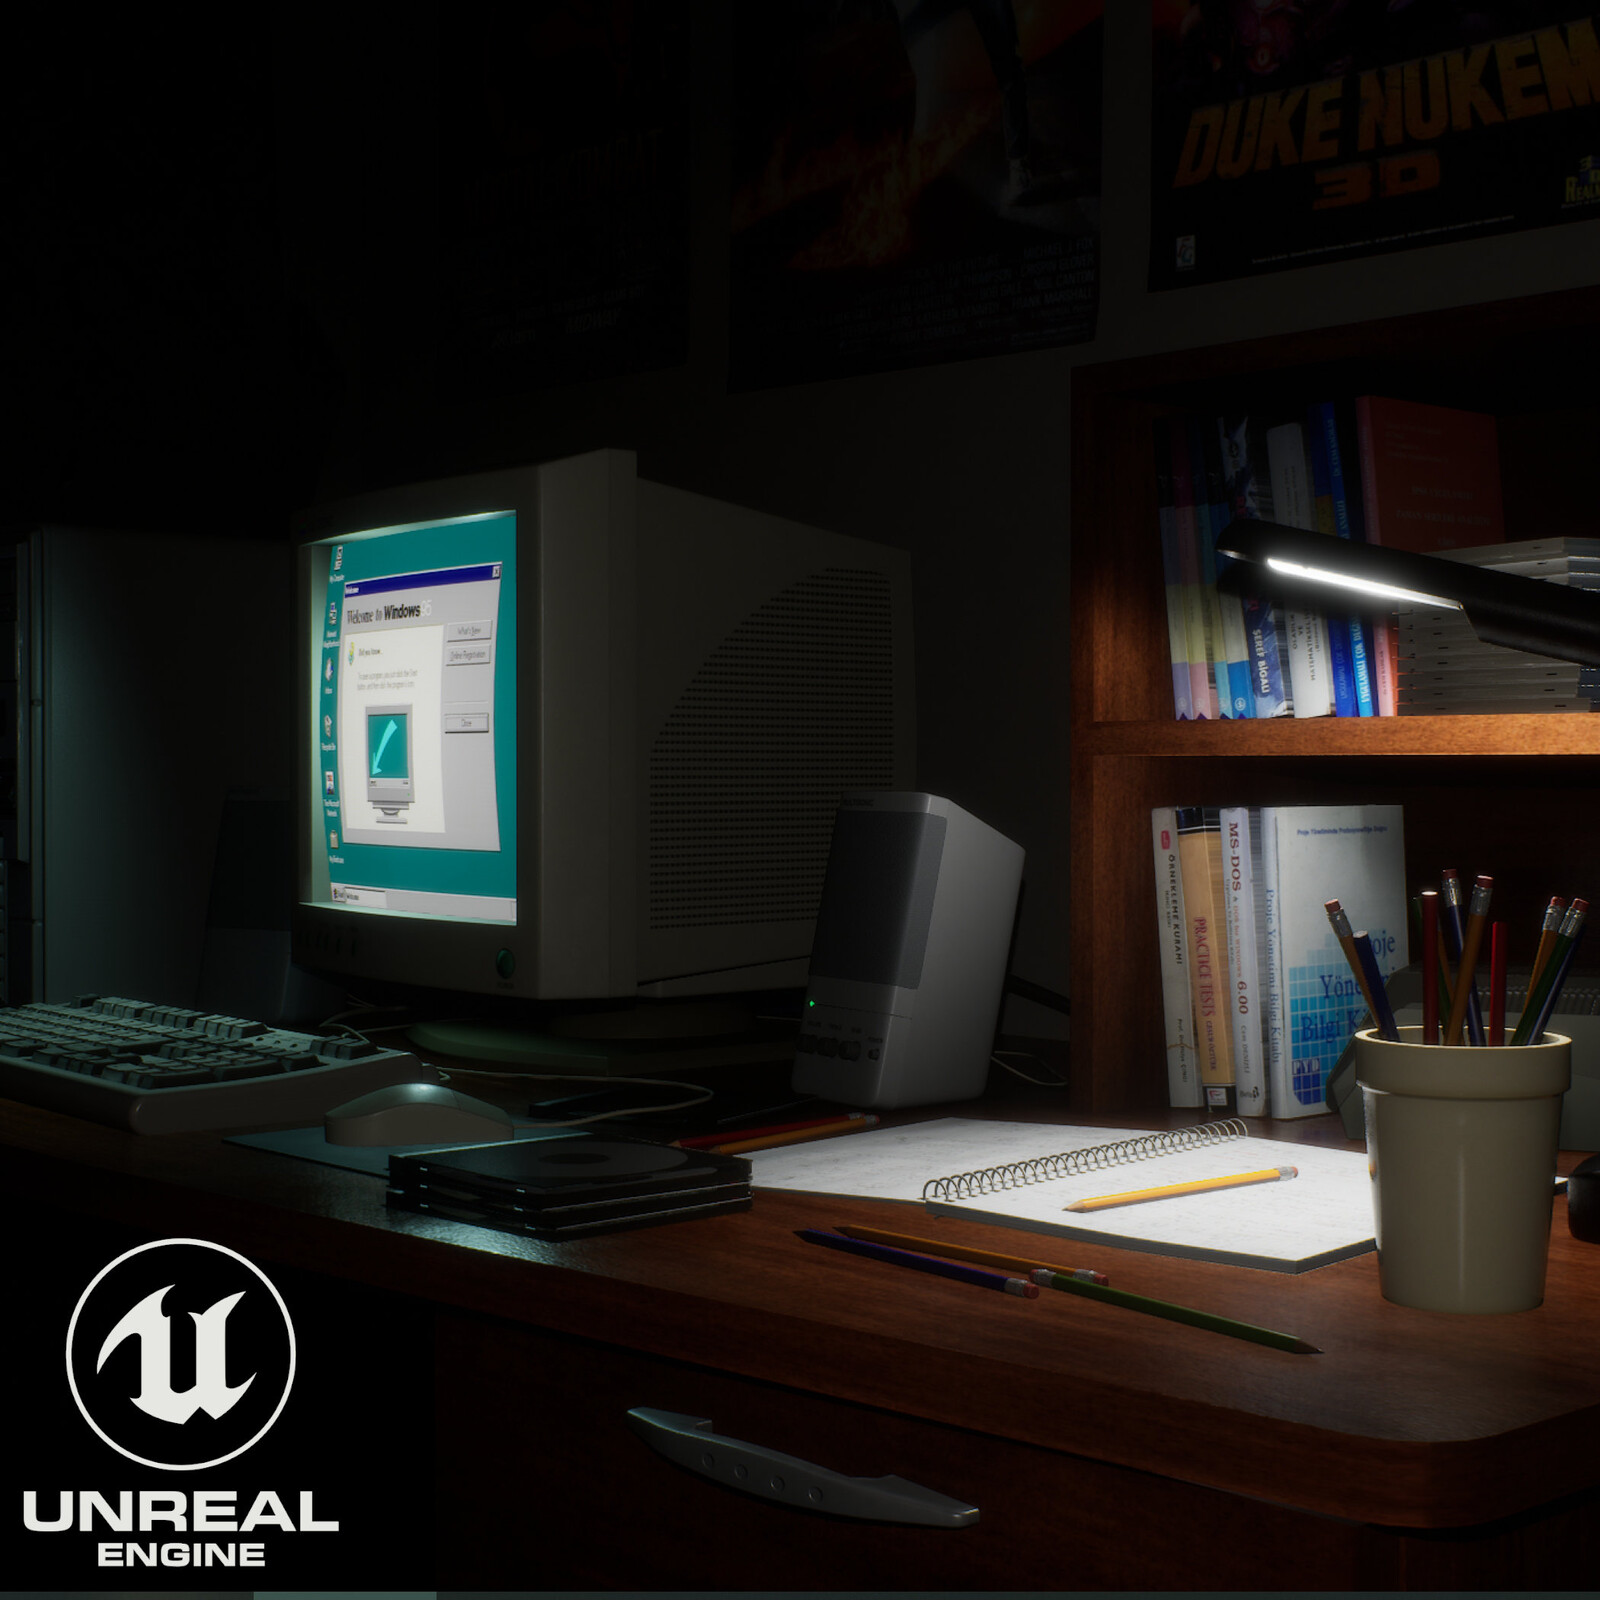 Scene from 90s - Unreal Engine Version